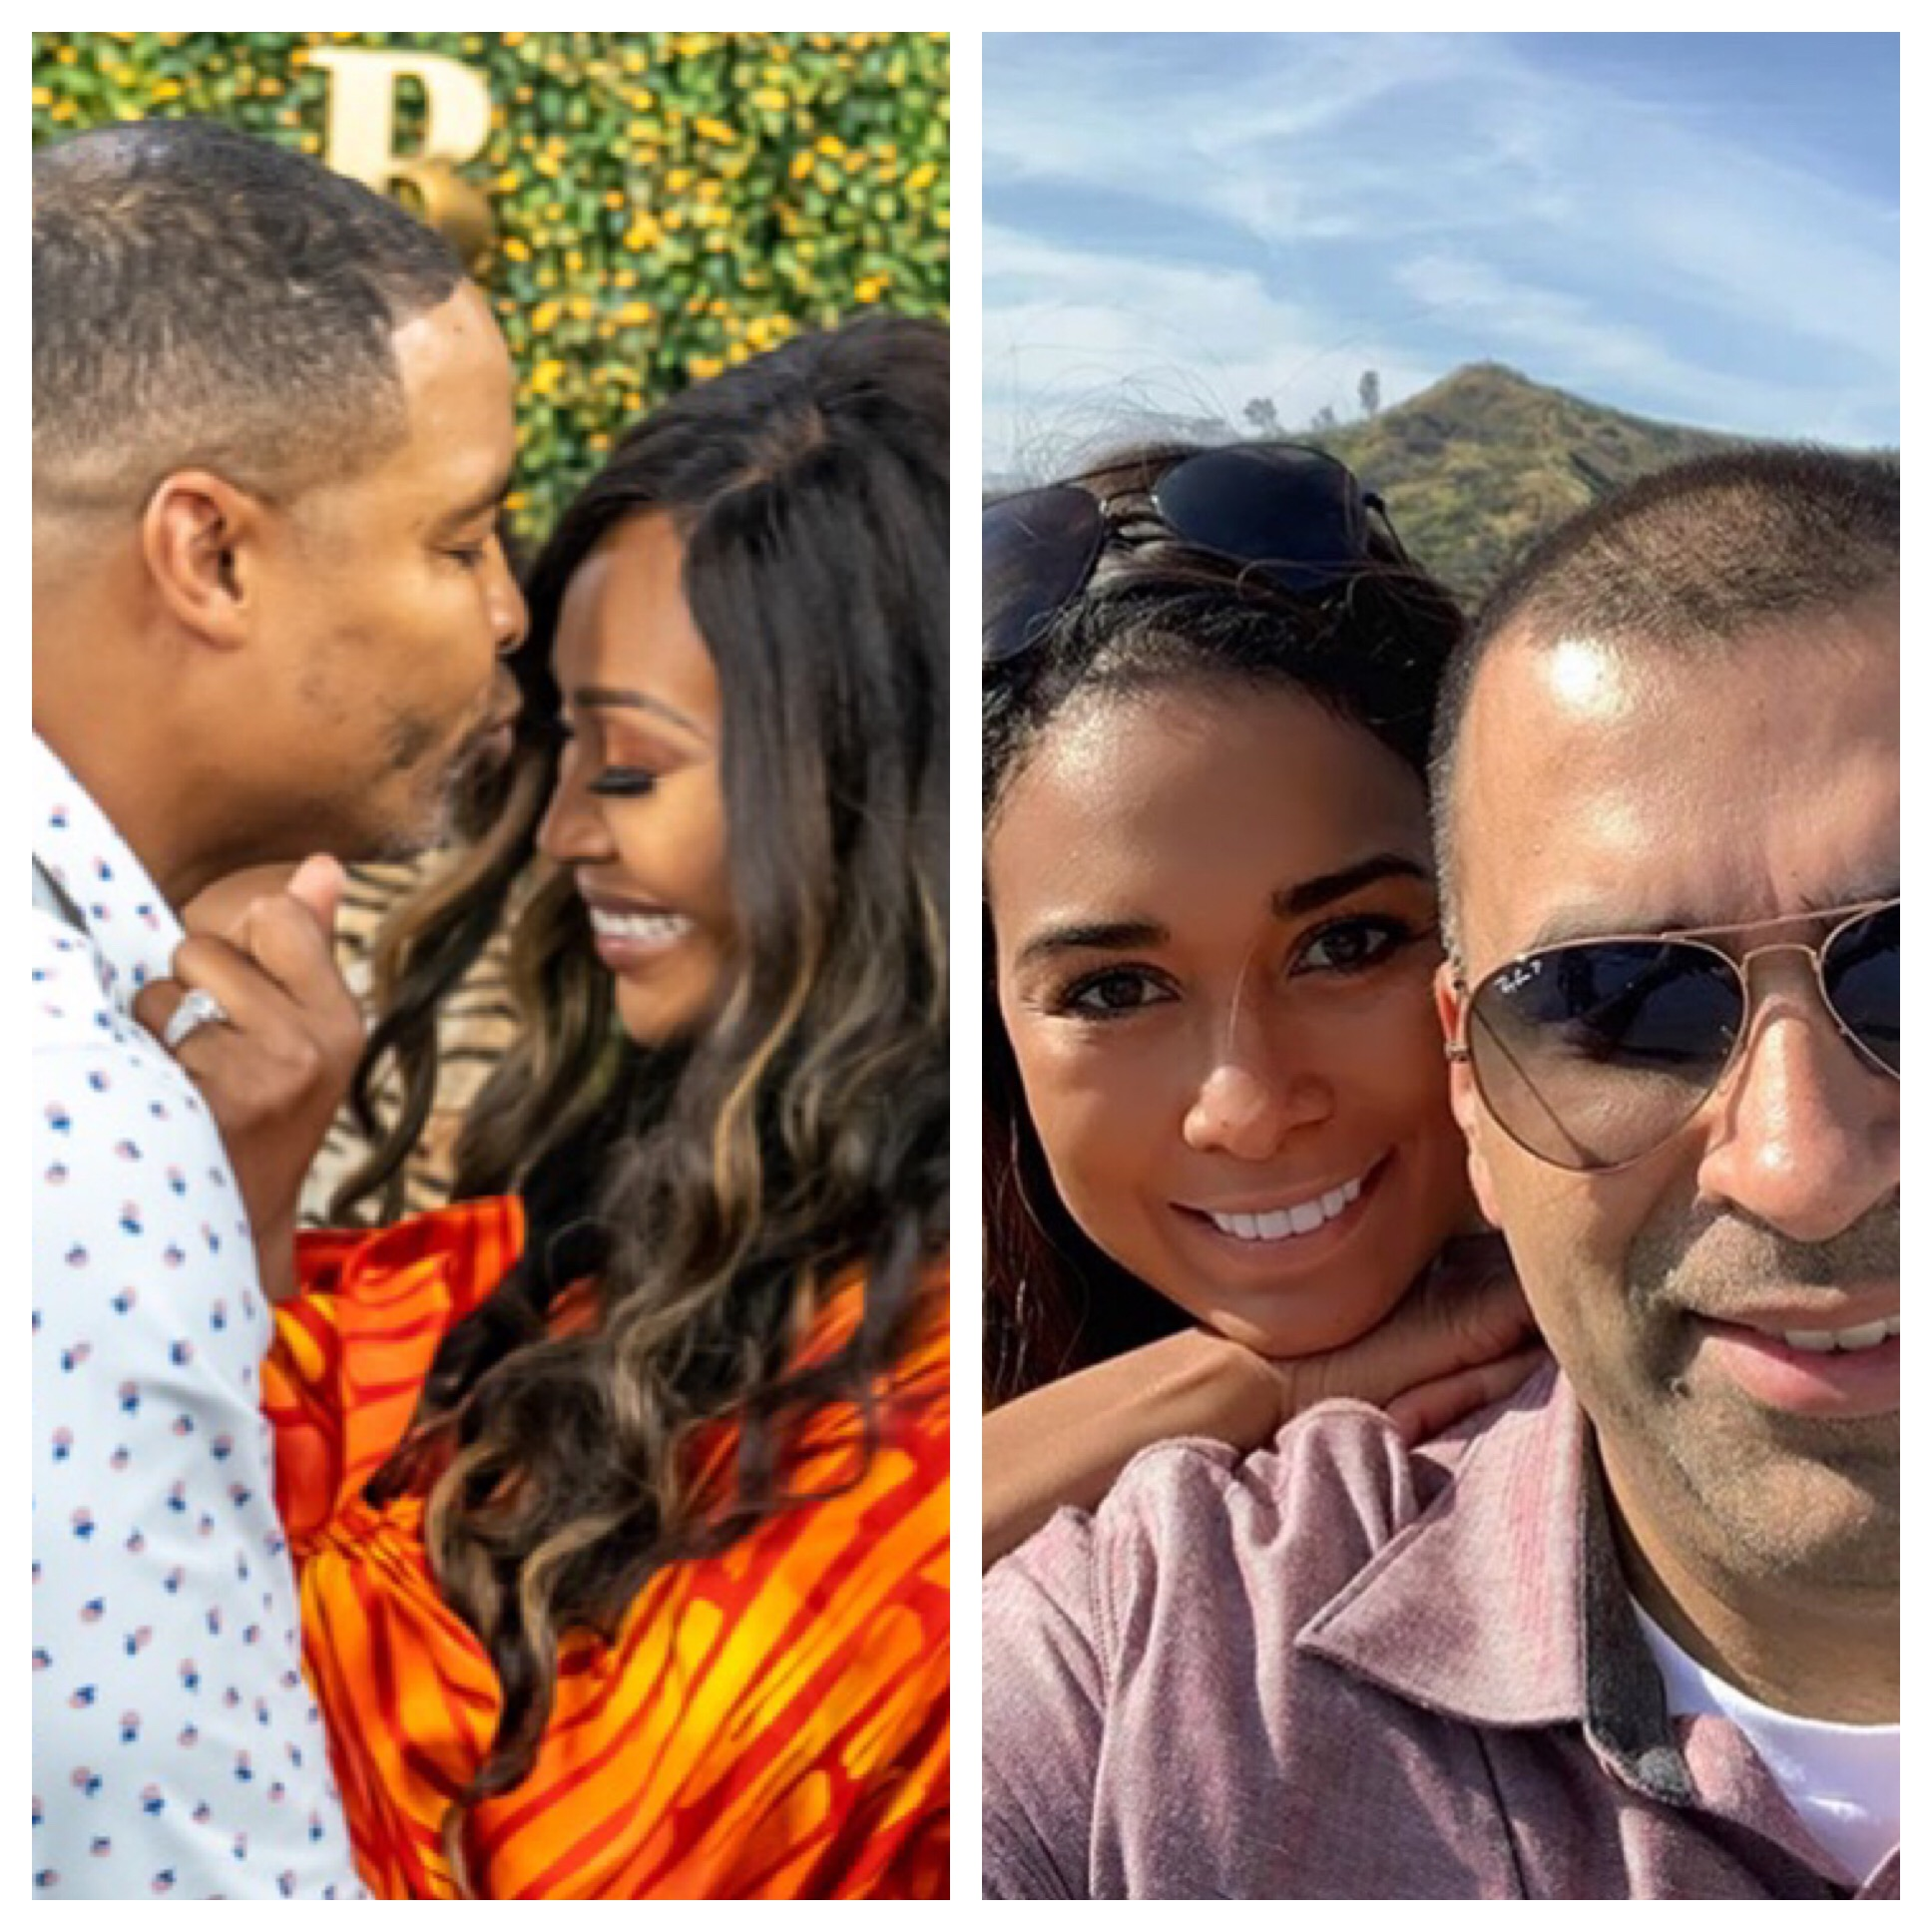 Rhop S Katie Rost Rhoa S Cynthia Bailey Are Both Engaged To The